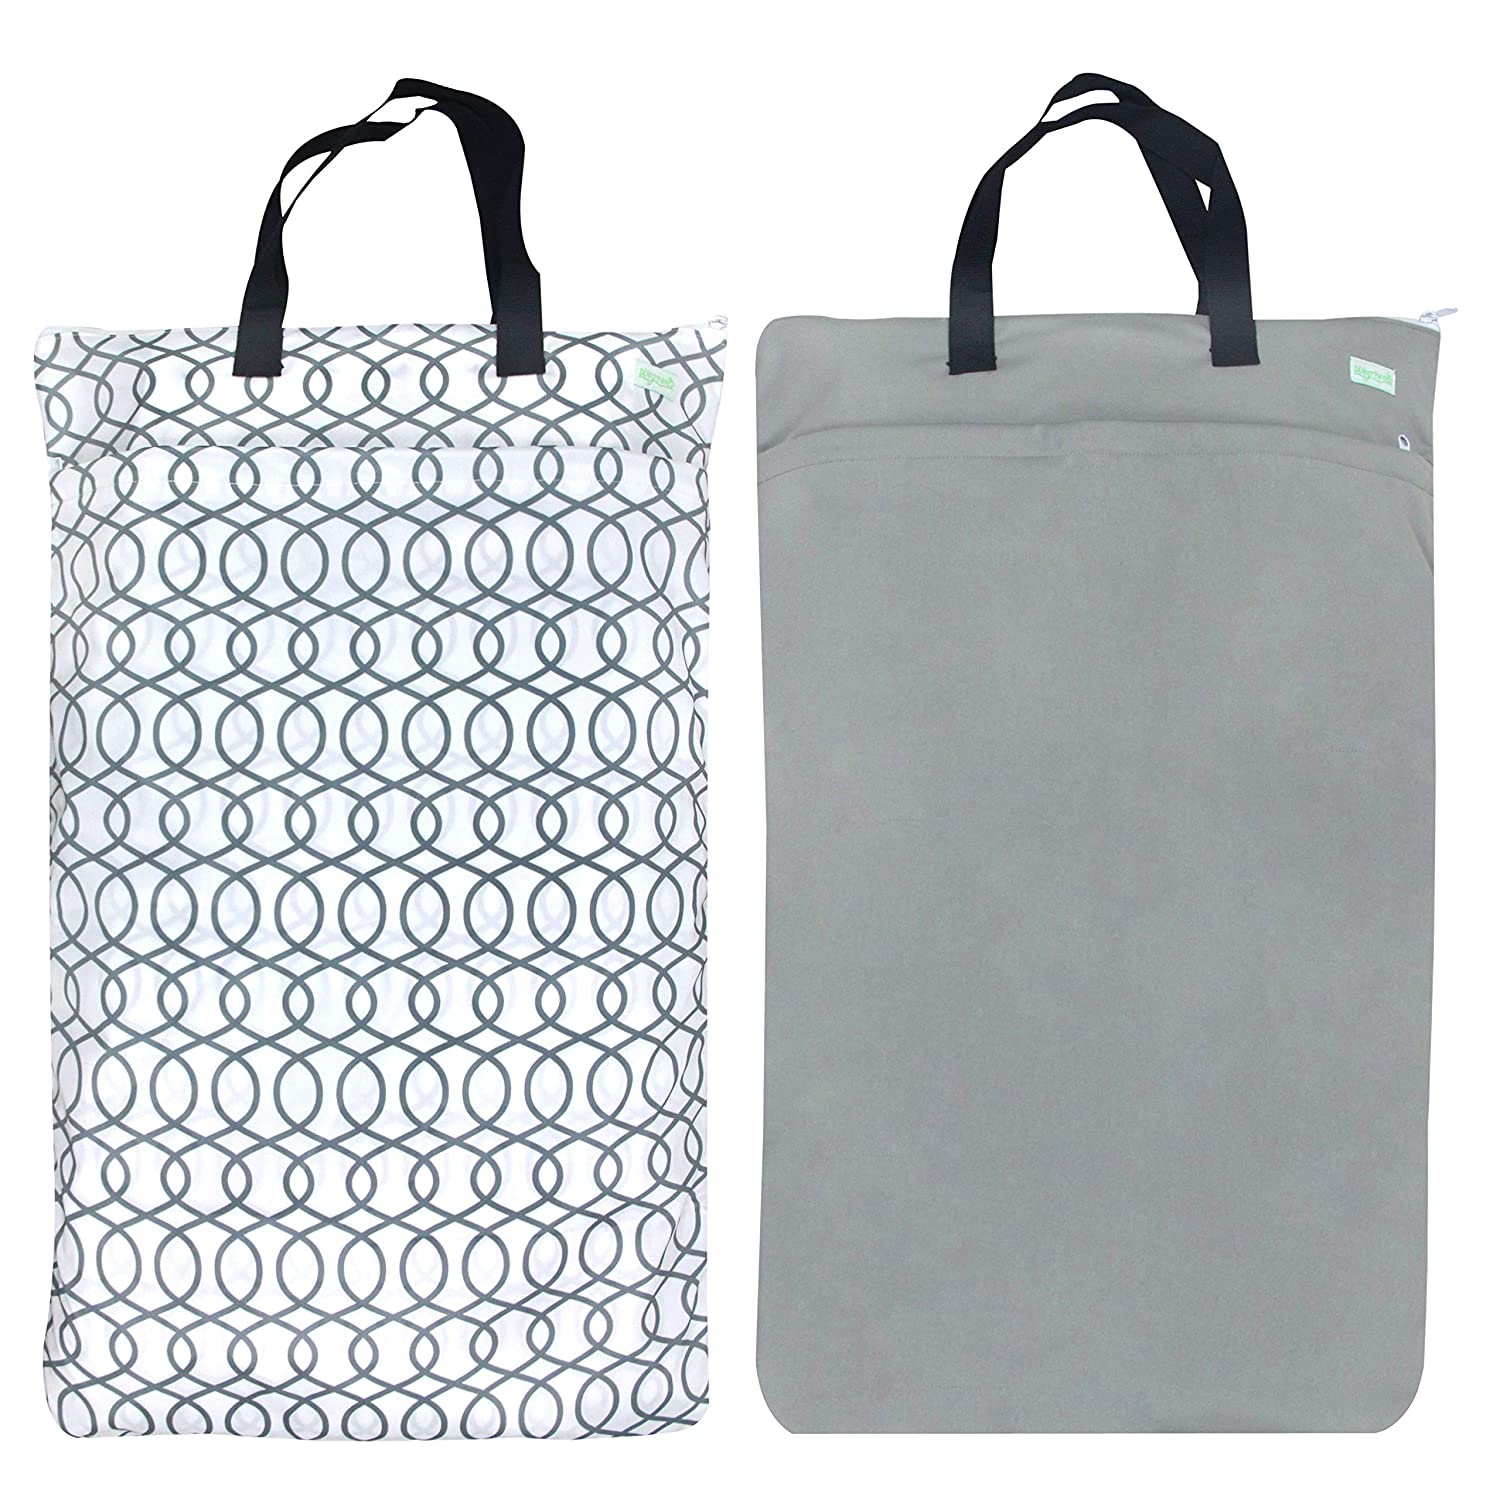 Wegreeco Reusable Hanging Wet Dry Cloth 2 Bag Pack Diaper Max 60% OFF It is very popular Grey